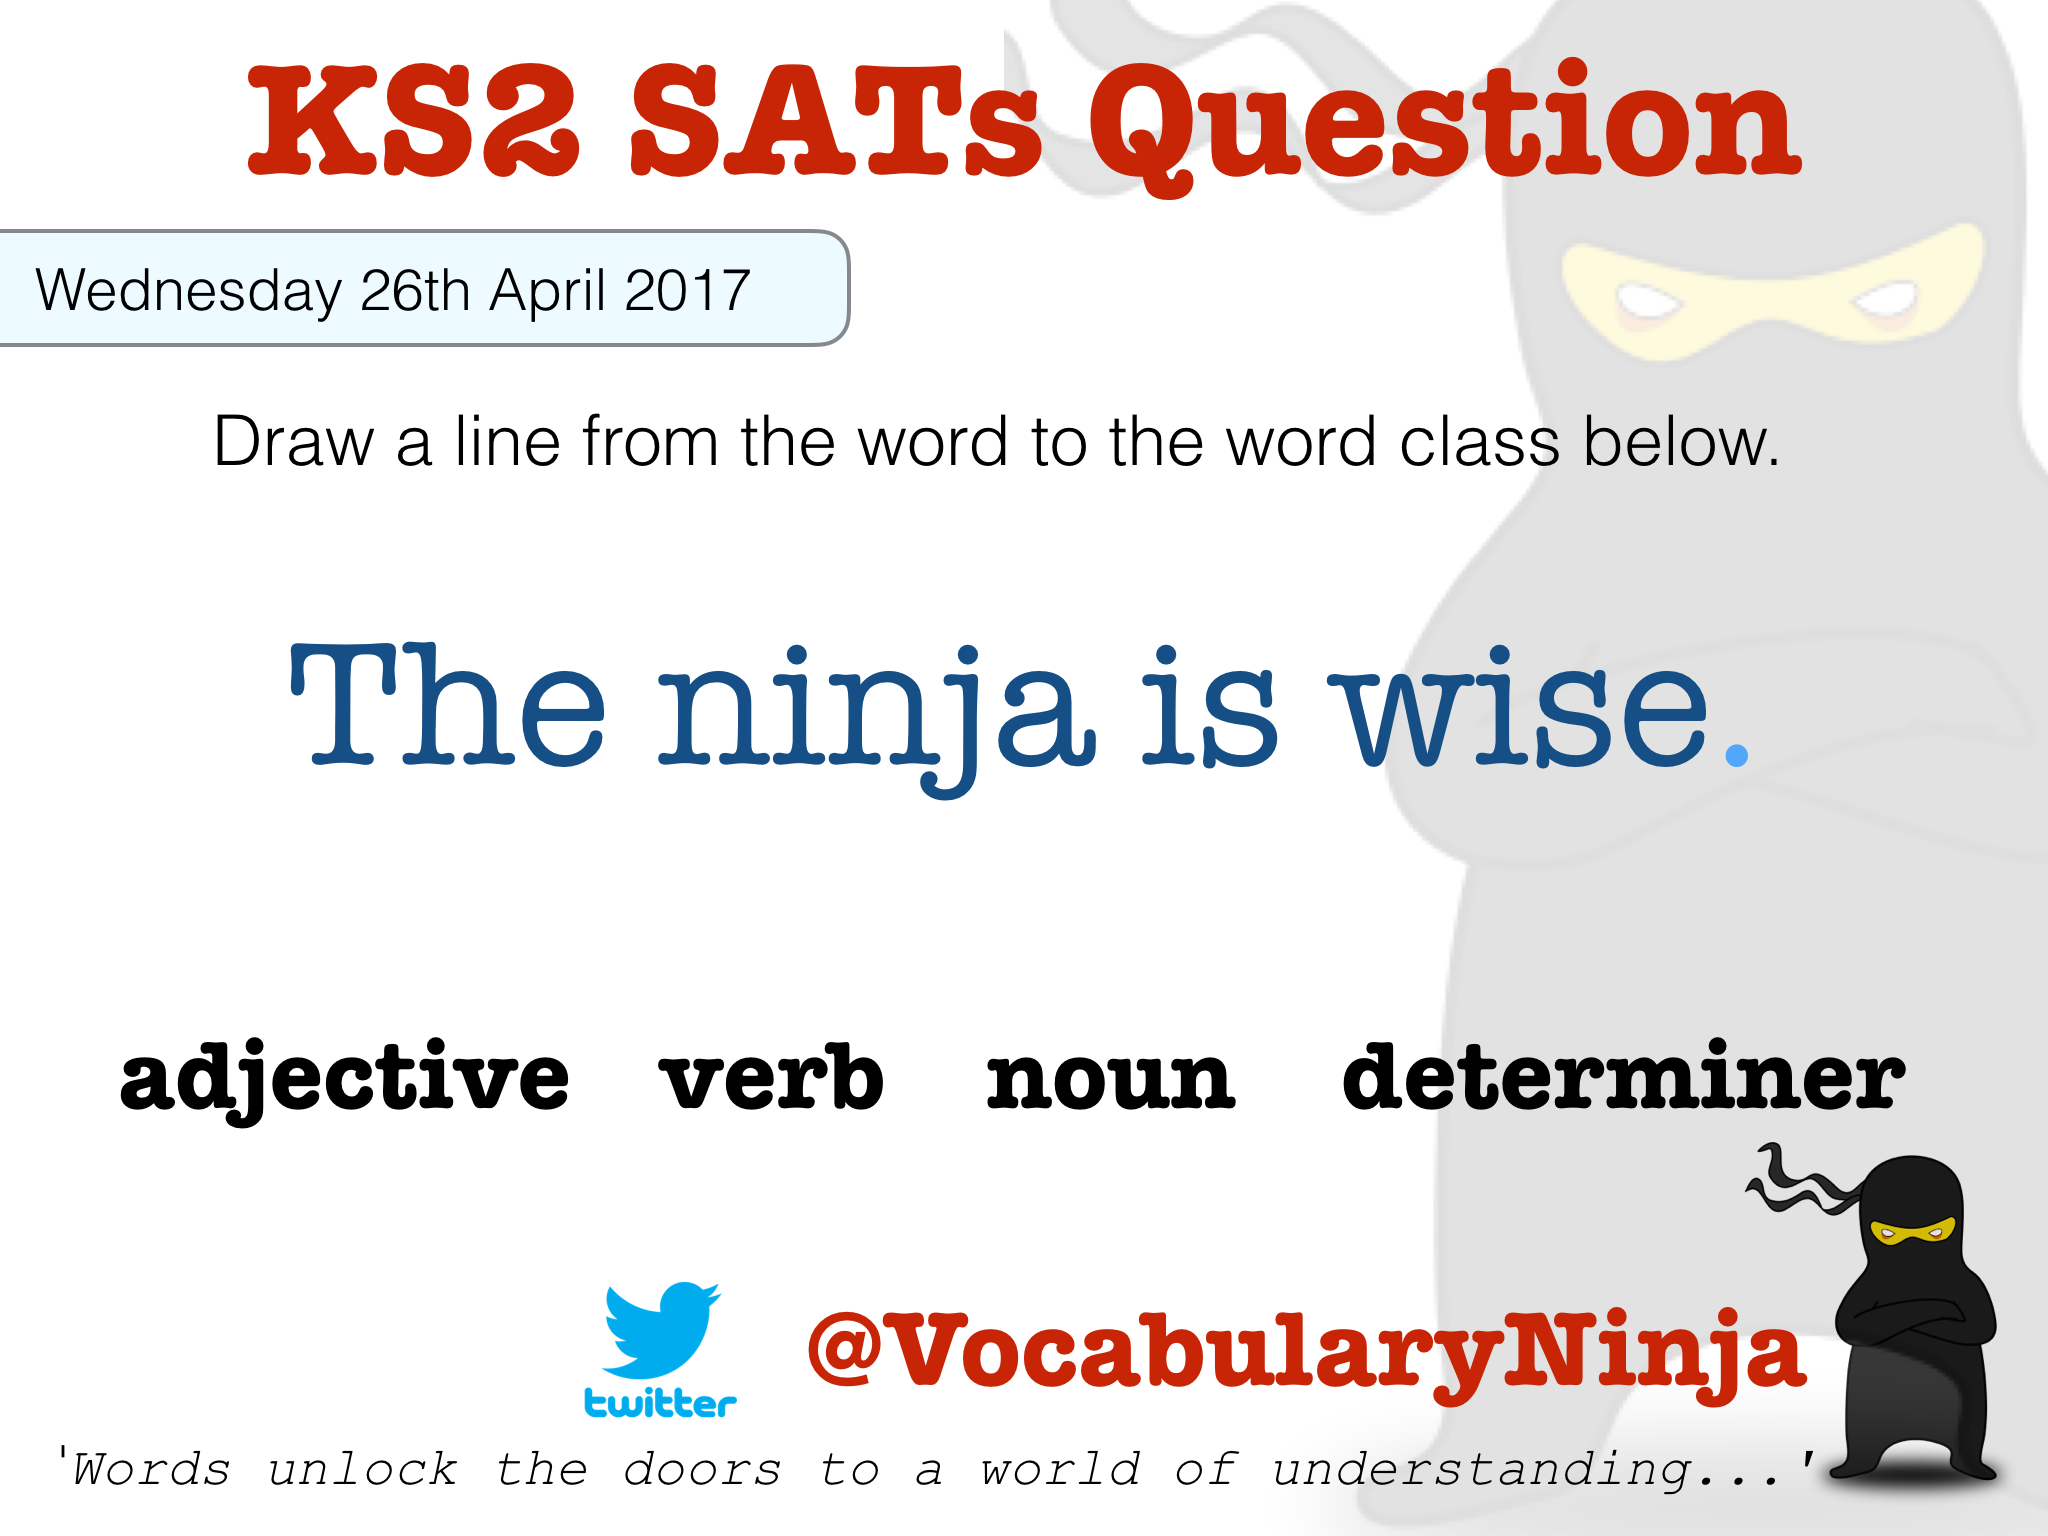 word document in 4 sections for questions